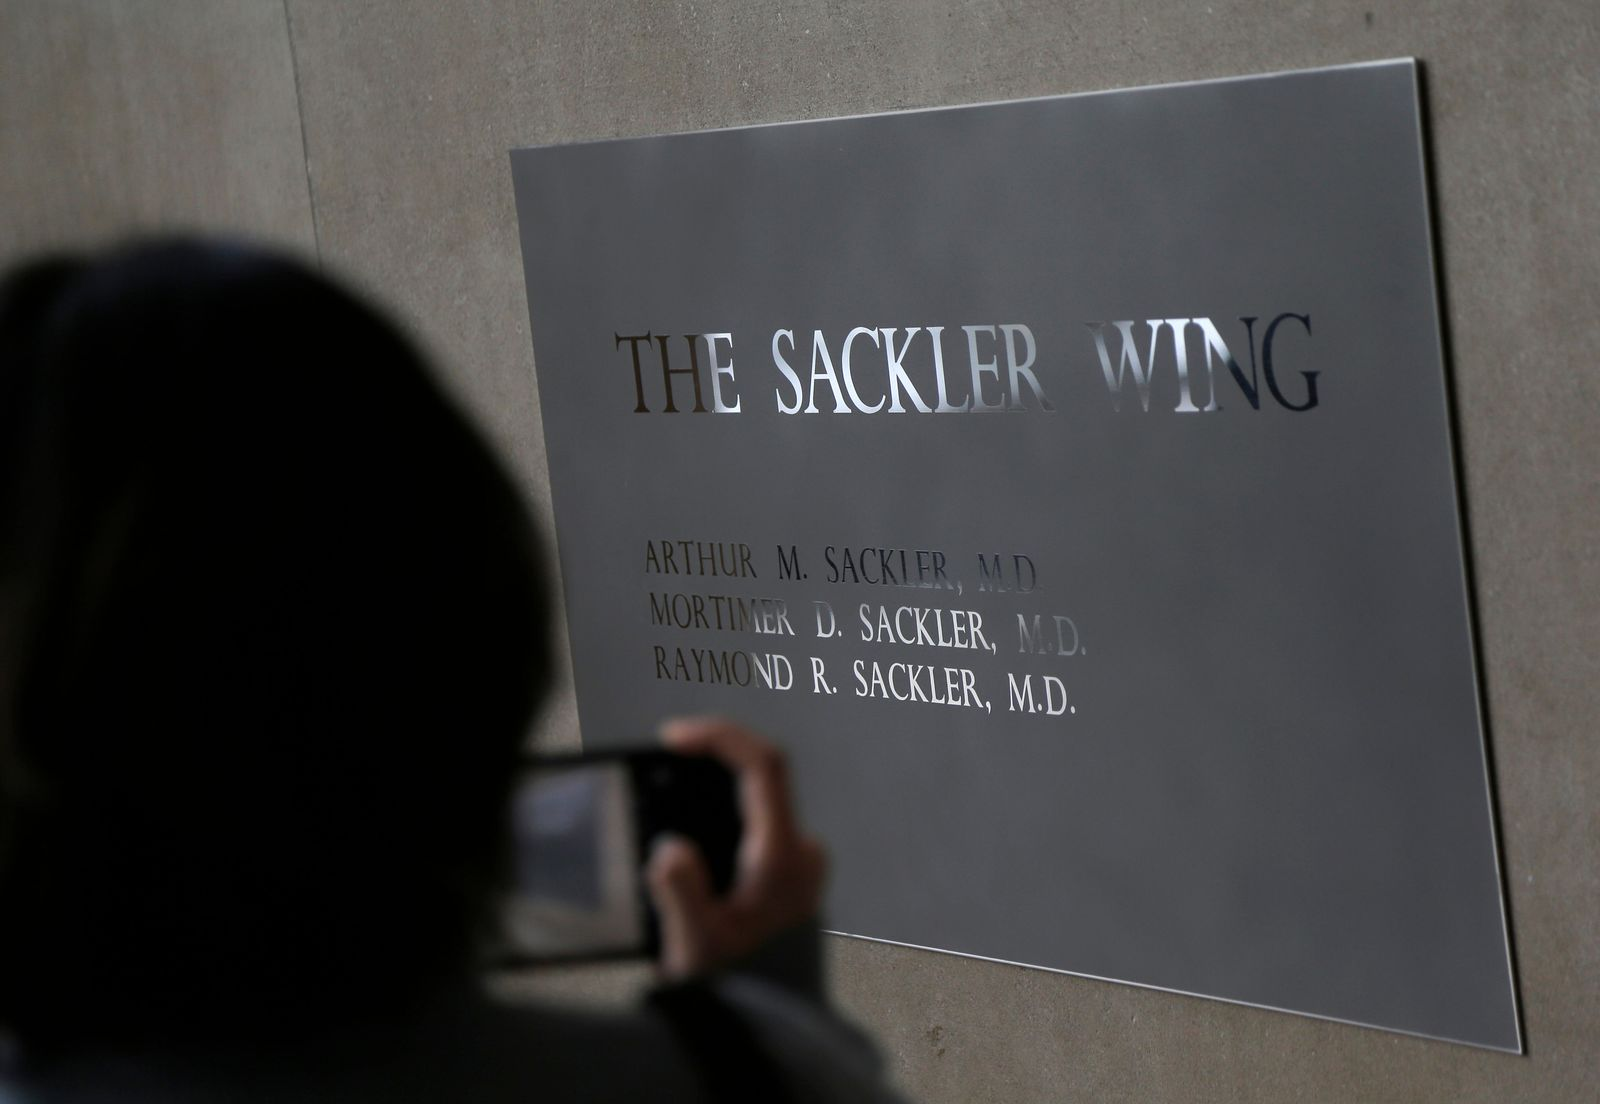 FILE - In this Jan. 17, 2019, file photo, a sign with some names of the Sackler family is displayed at the Metropolitan Museum of Art in New York. Their name used to be on a wing at the Louvre. But now the Sackler family wealth has become linked to sales of OxyContin, and their company, drug maker Purdue Pharma, is attempting to settle lawsuits over the opioid crisis. (AP Photo/Seth Wenig, File)